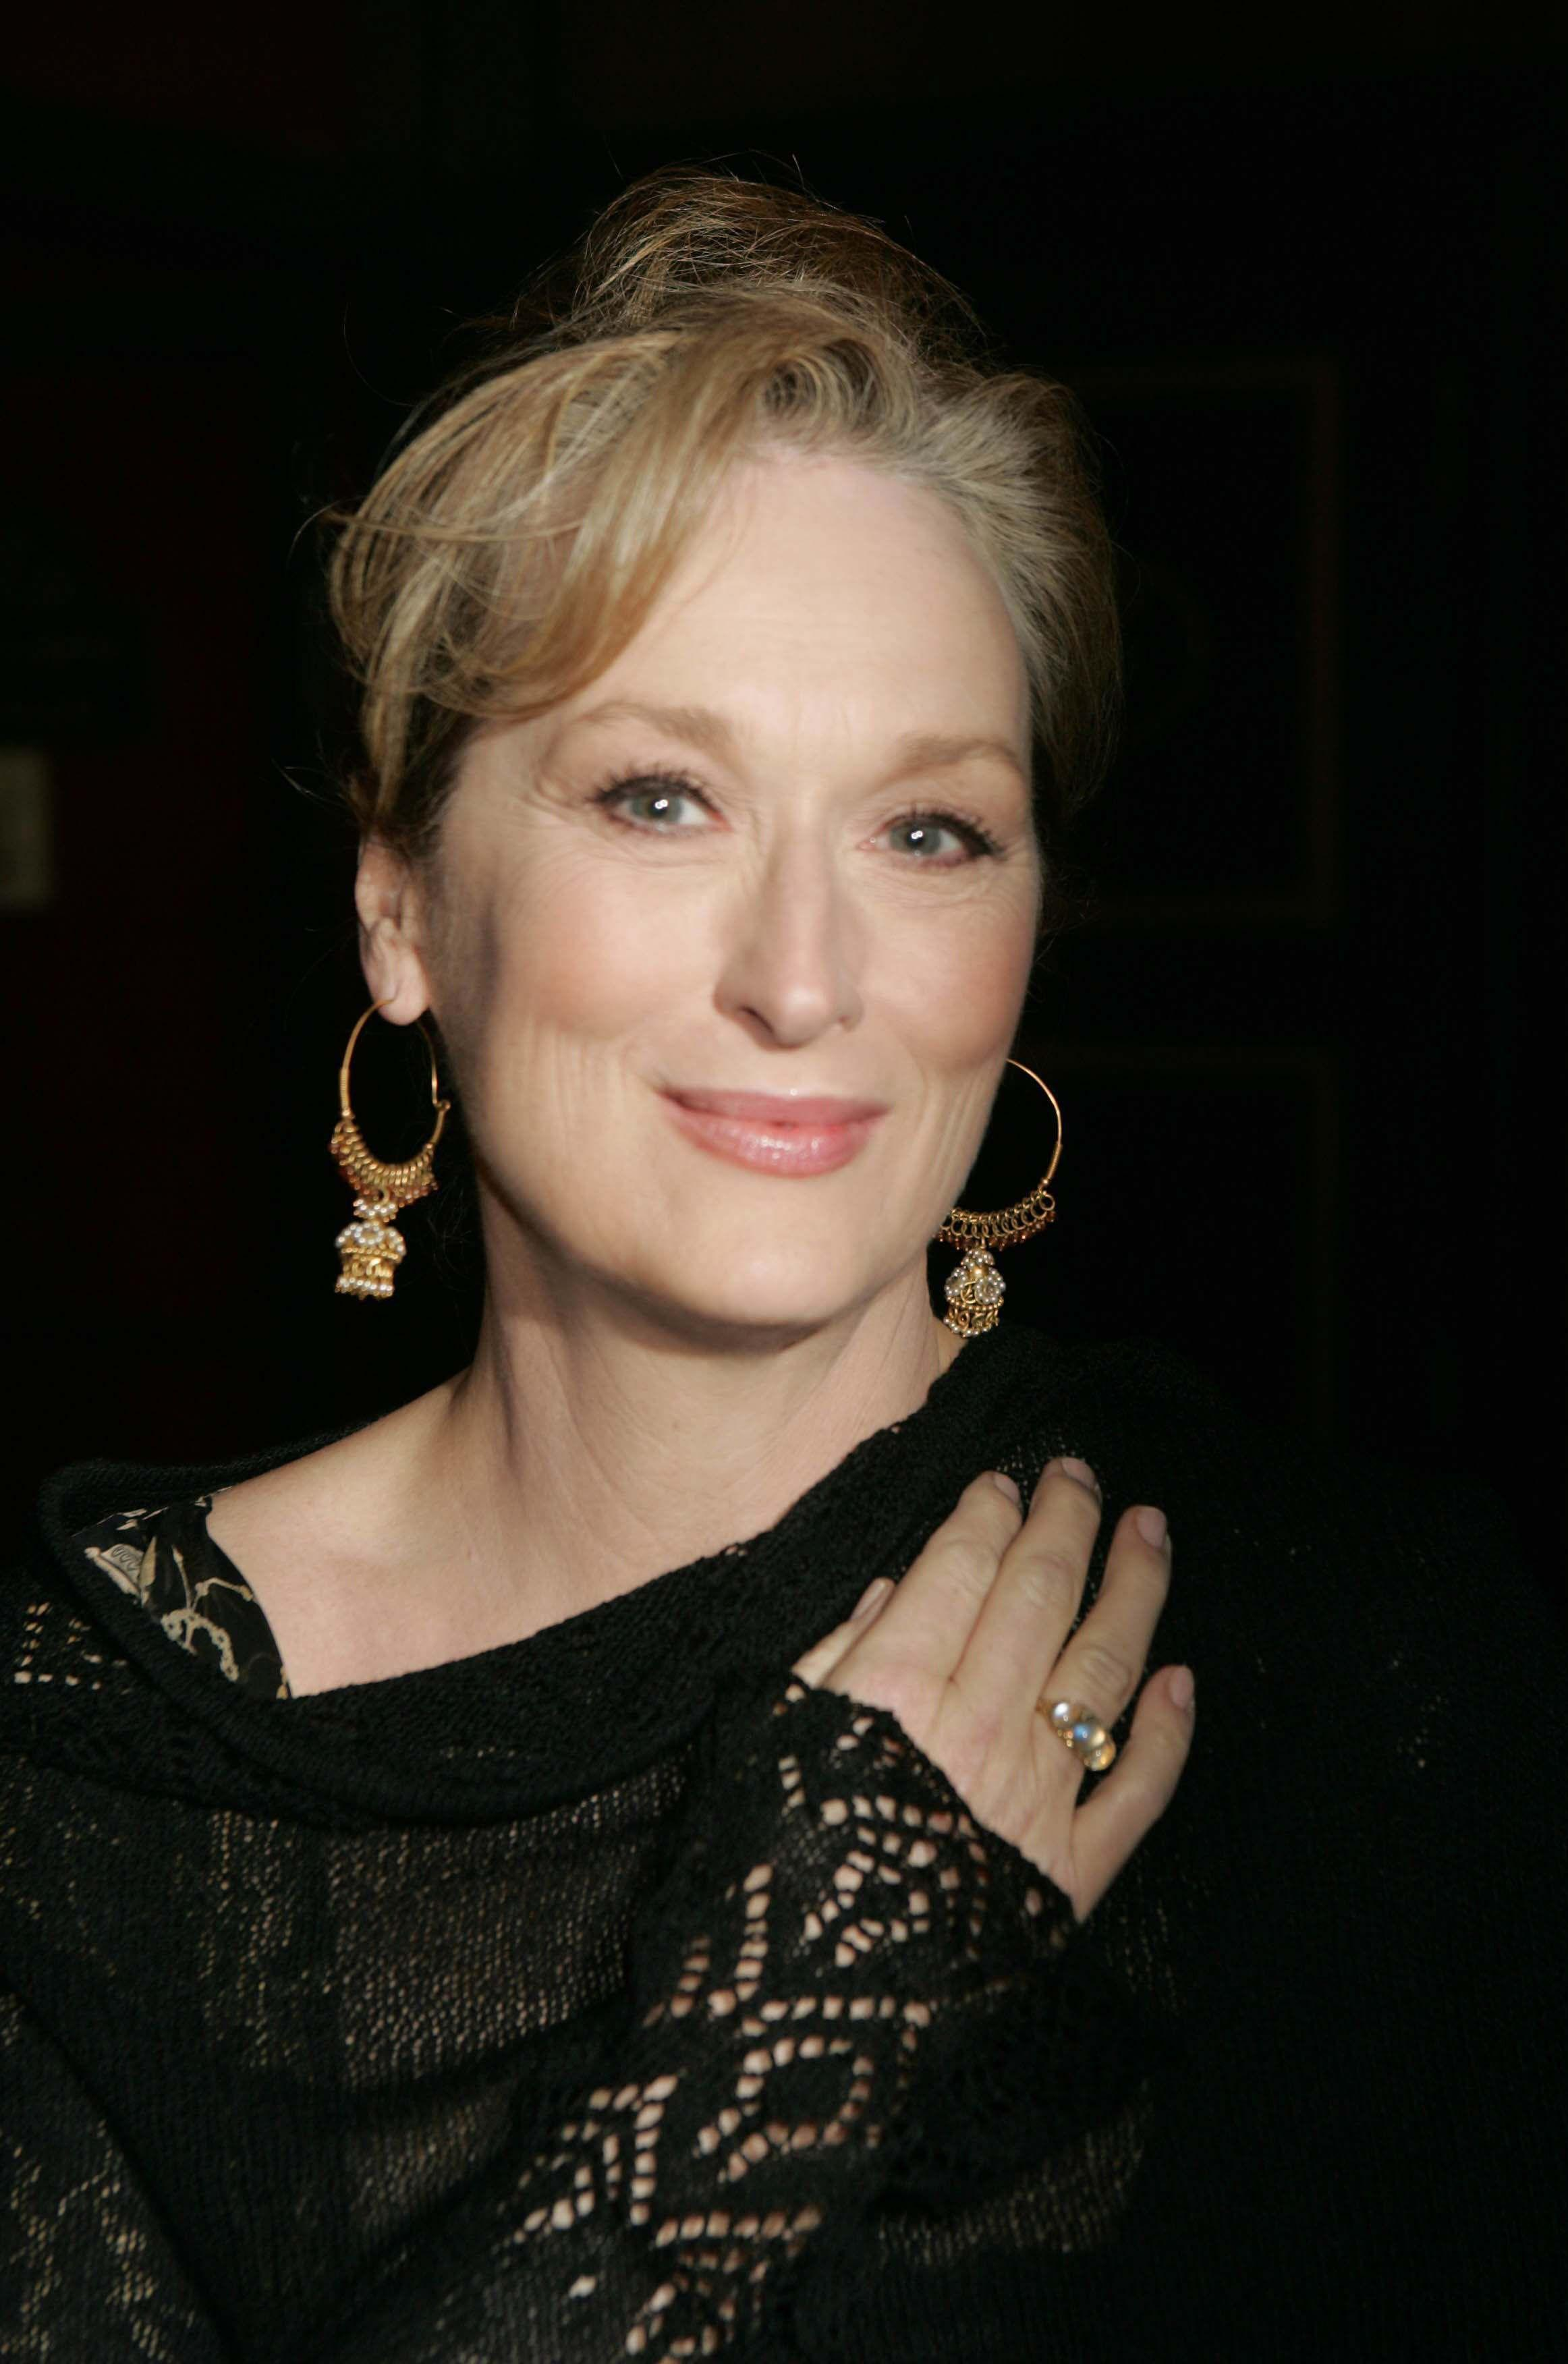 HD Meryl Streep Wallpapers and Photos | HD Celebrities Wallpapers